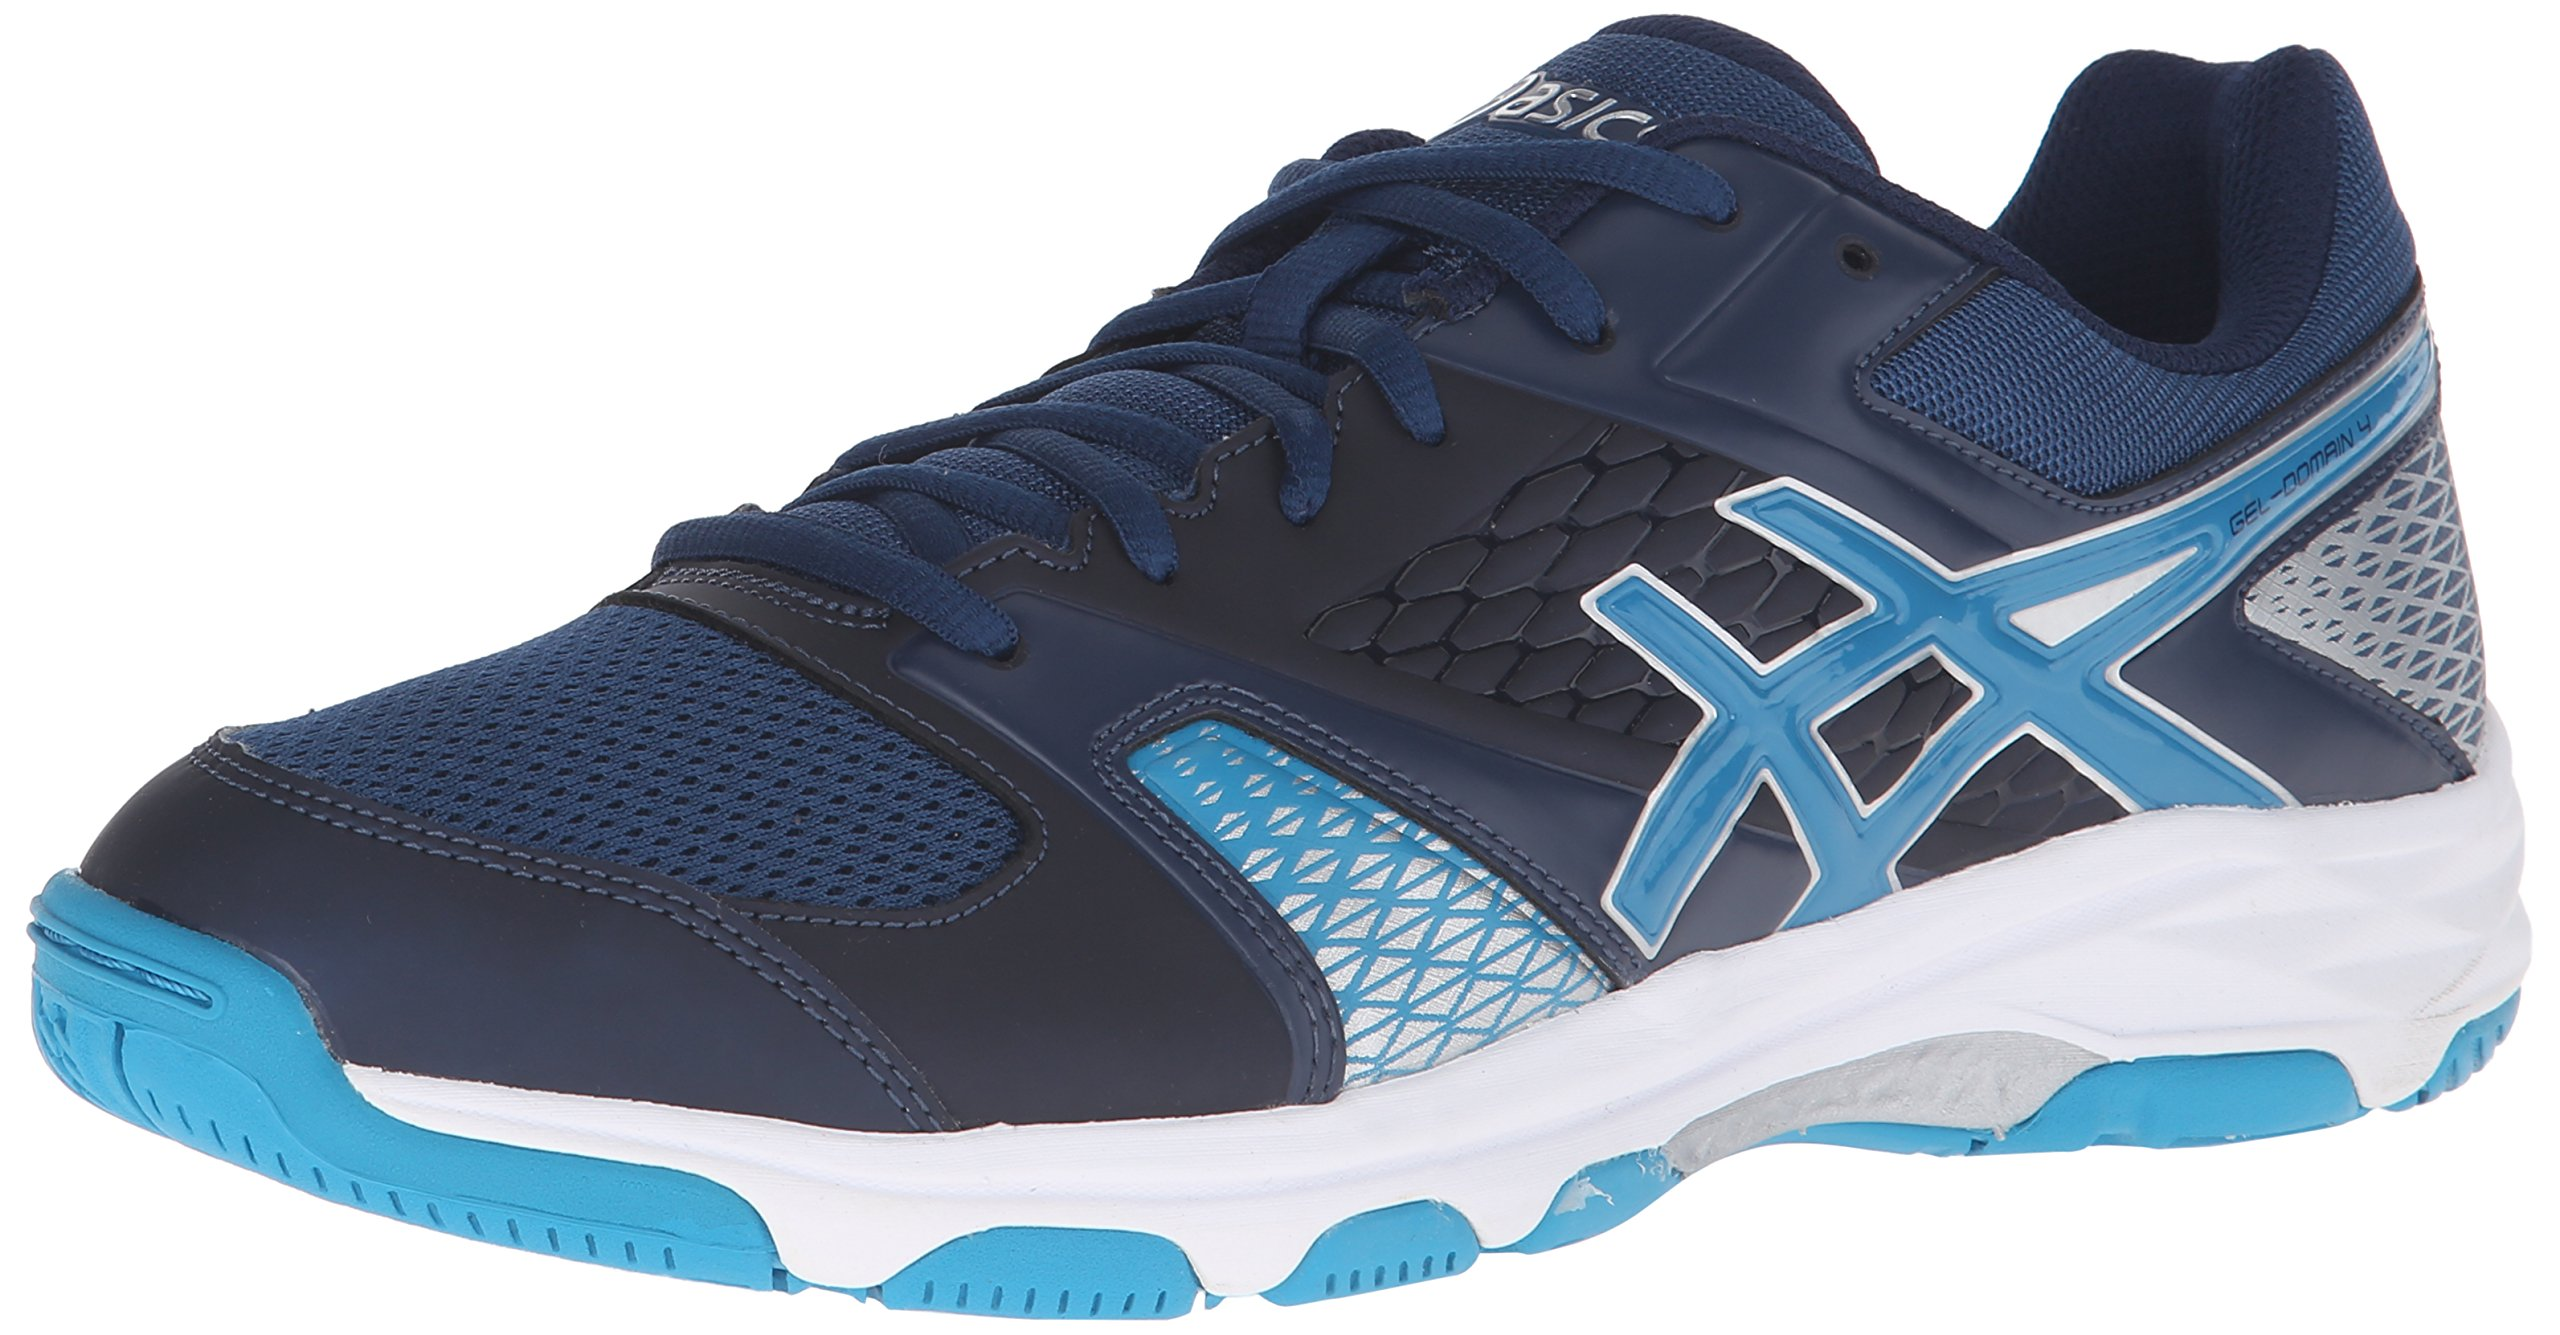 ASICS Men's Gel-Domain 4 Volleyball Shoe, Poseidon/Blue Jewel/White, 10 M US by ASICS